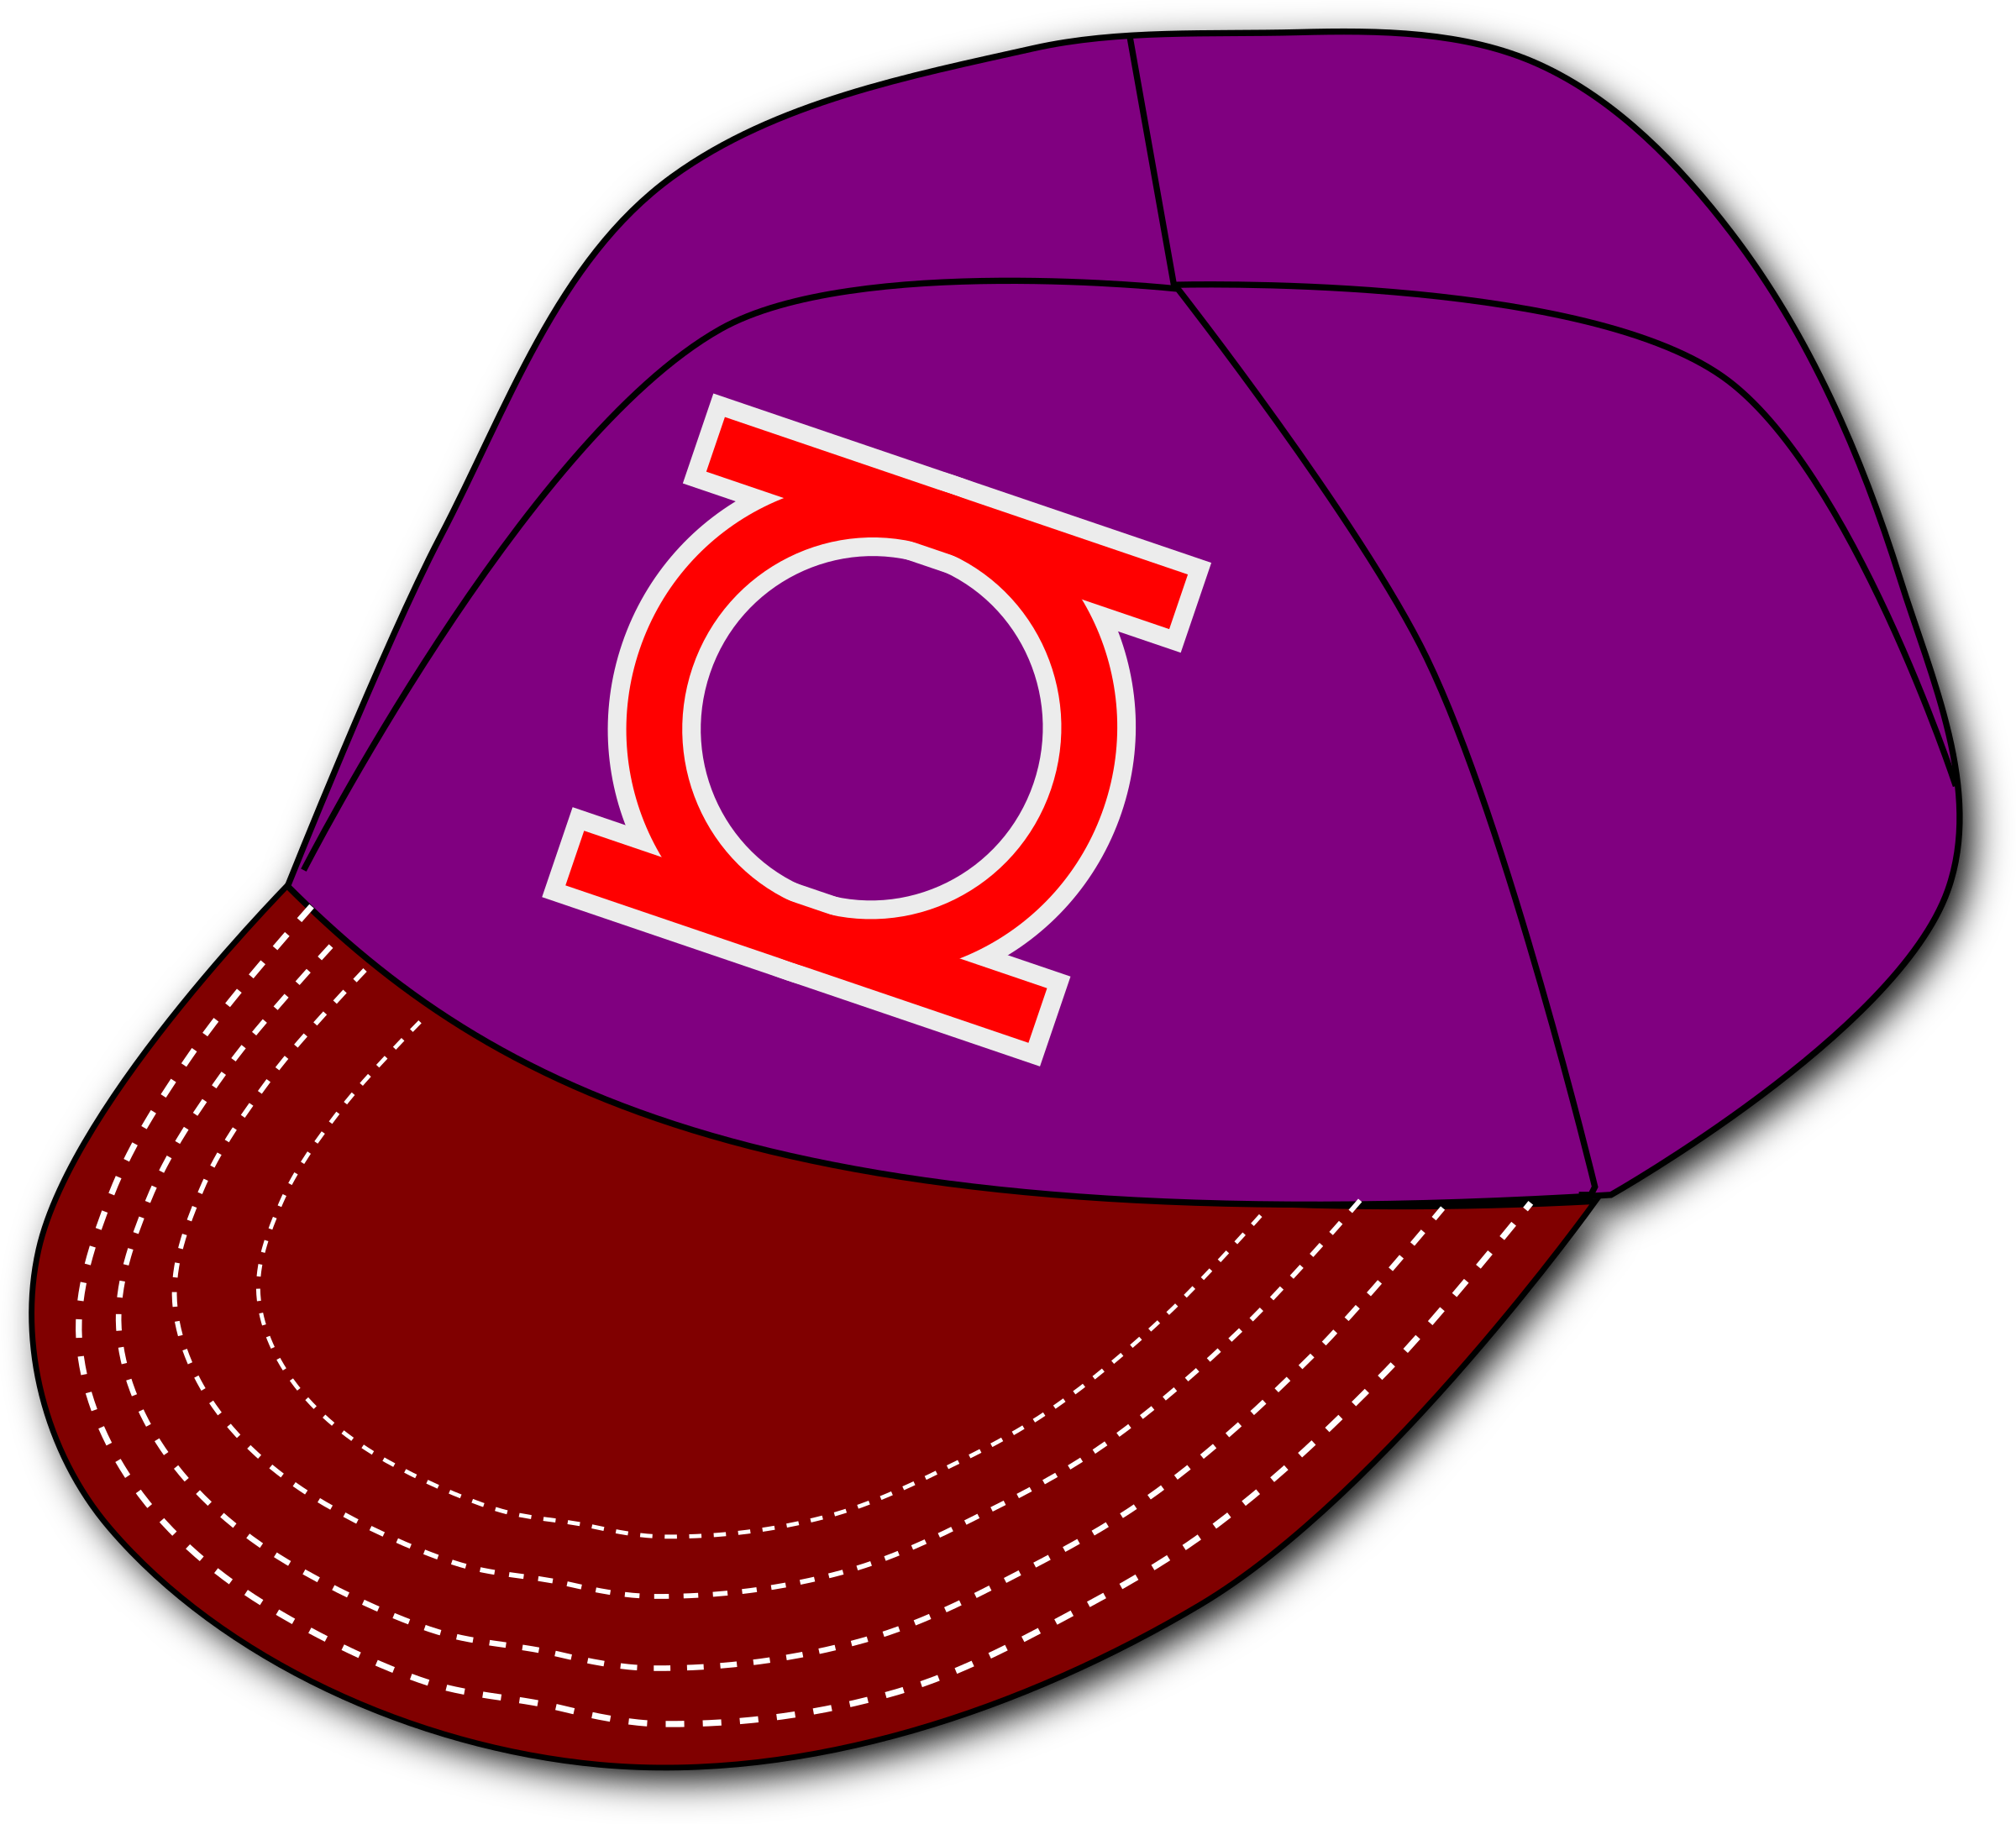 Clipart baseball hat with logo graphic free stock Clipart - Baseball Cap graphic free stock